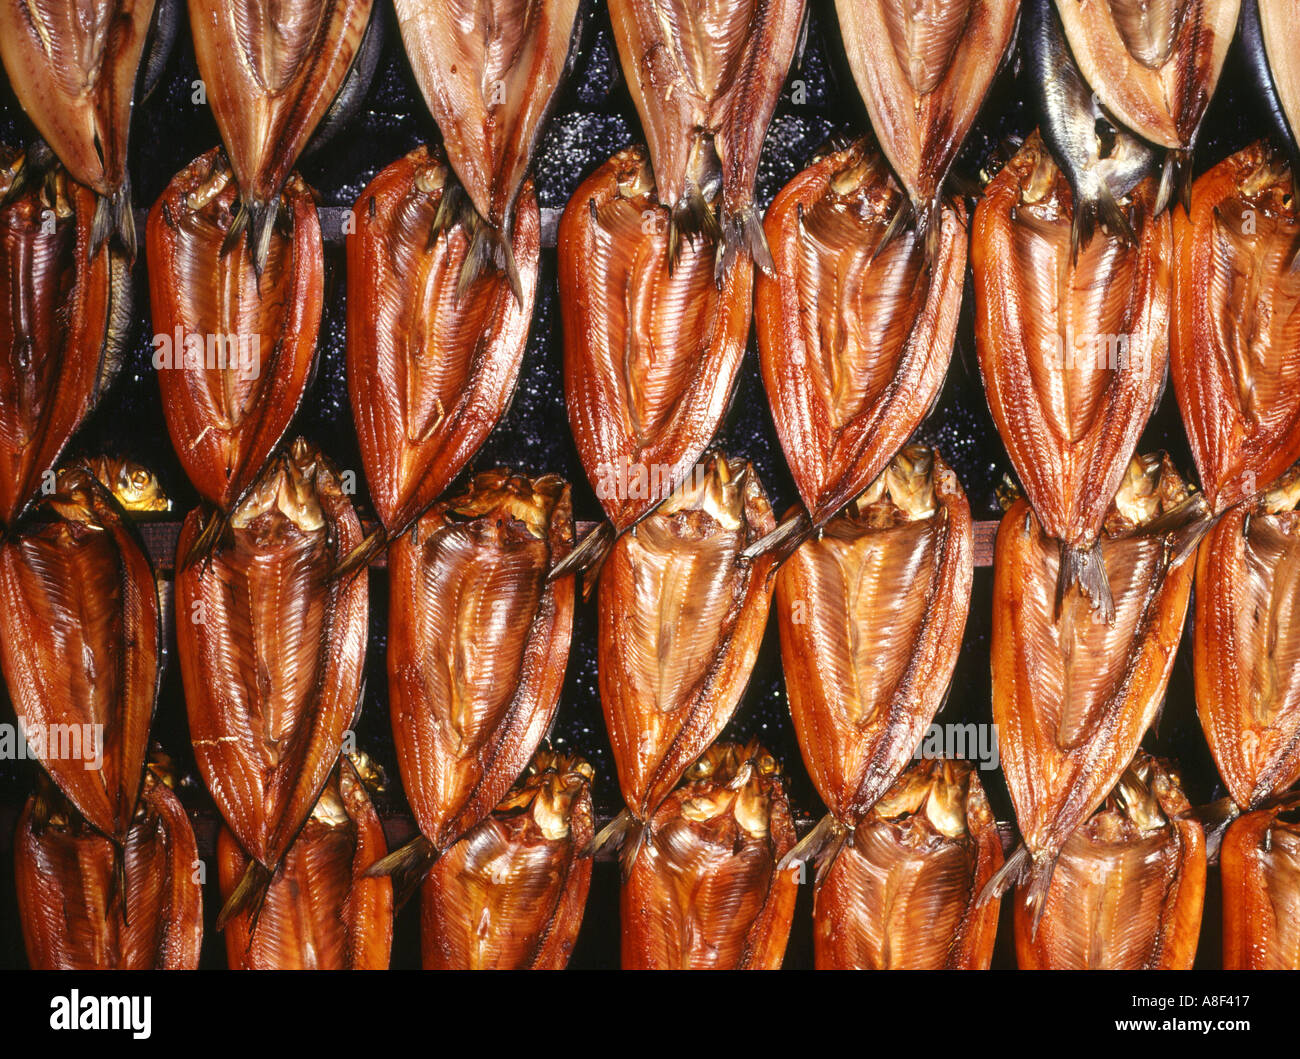 dh  FISH SMOKED UK Rows of smoked kippers in smoking oven preserved - Stock Image